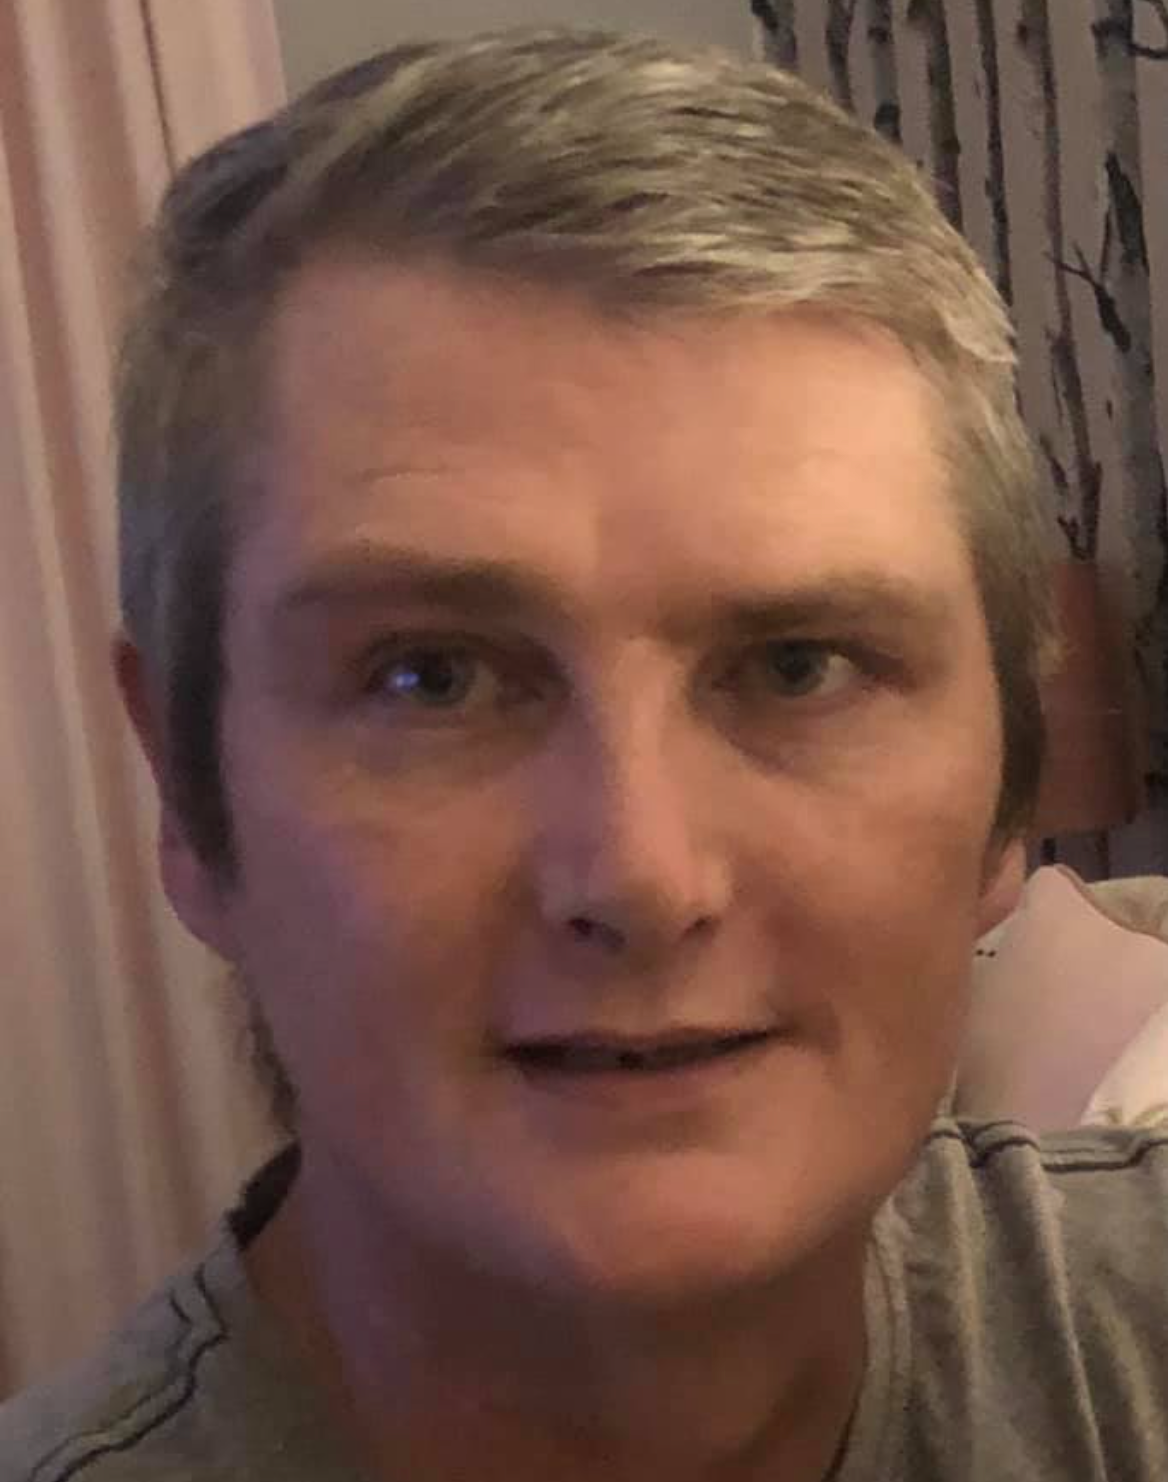 Family of missing man who boarded train 'towards Manchester' appeal for information, The Manc